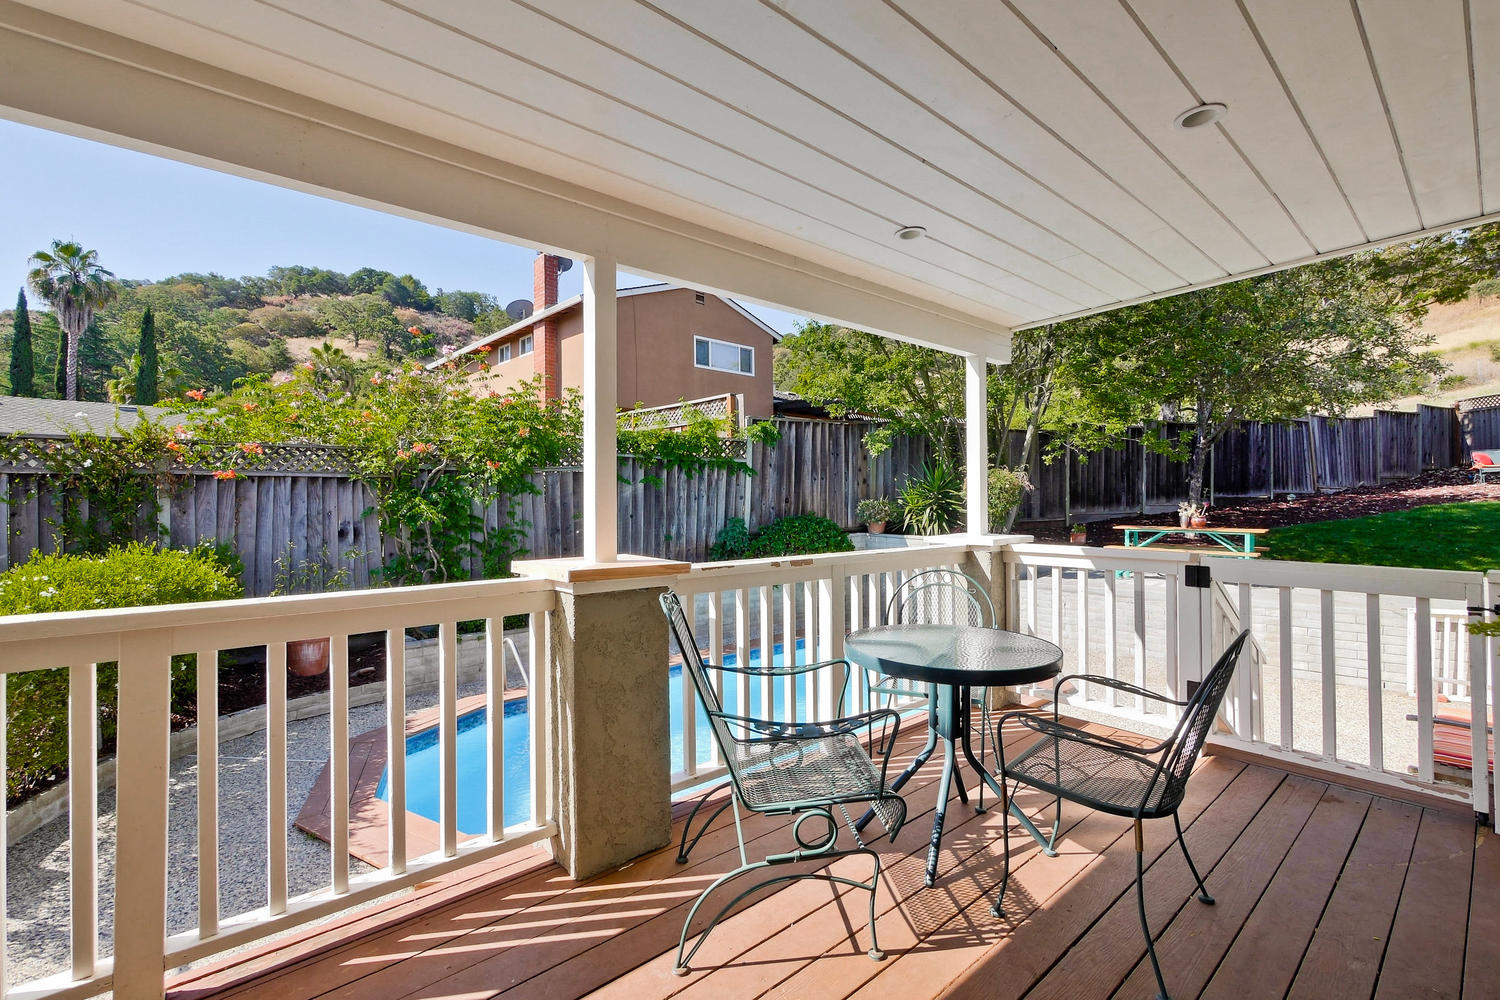 820 Colleen Dr San Jose CA-large-073-14-Deck off Kitchen Overlookin-1500x1000-72dpi